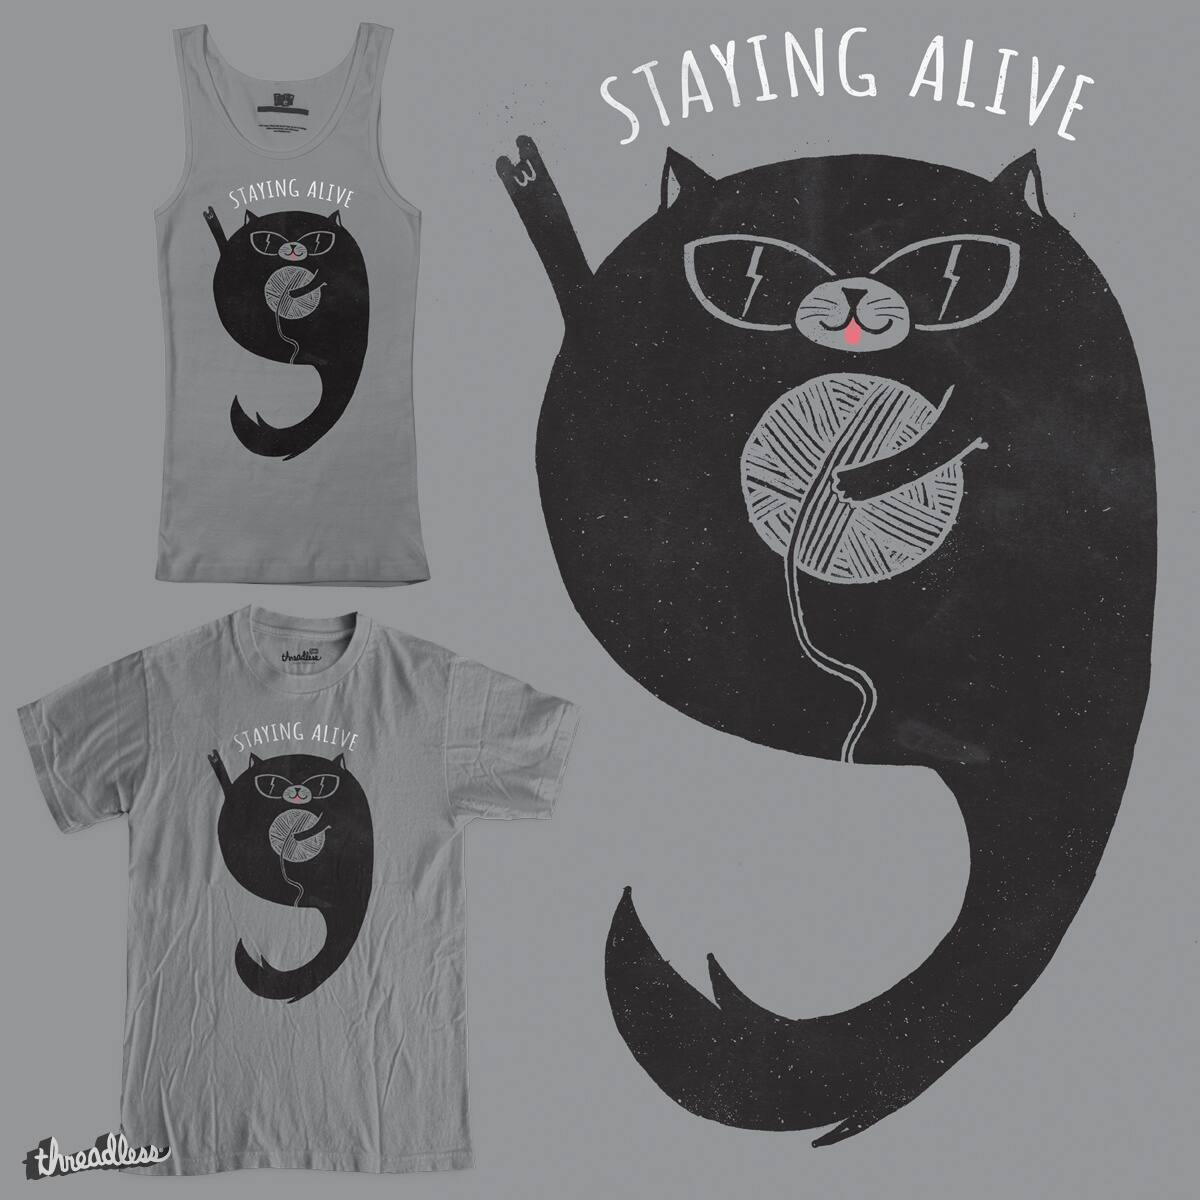 Staying Alive by RL76 on Threadless